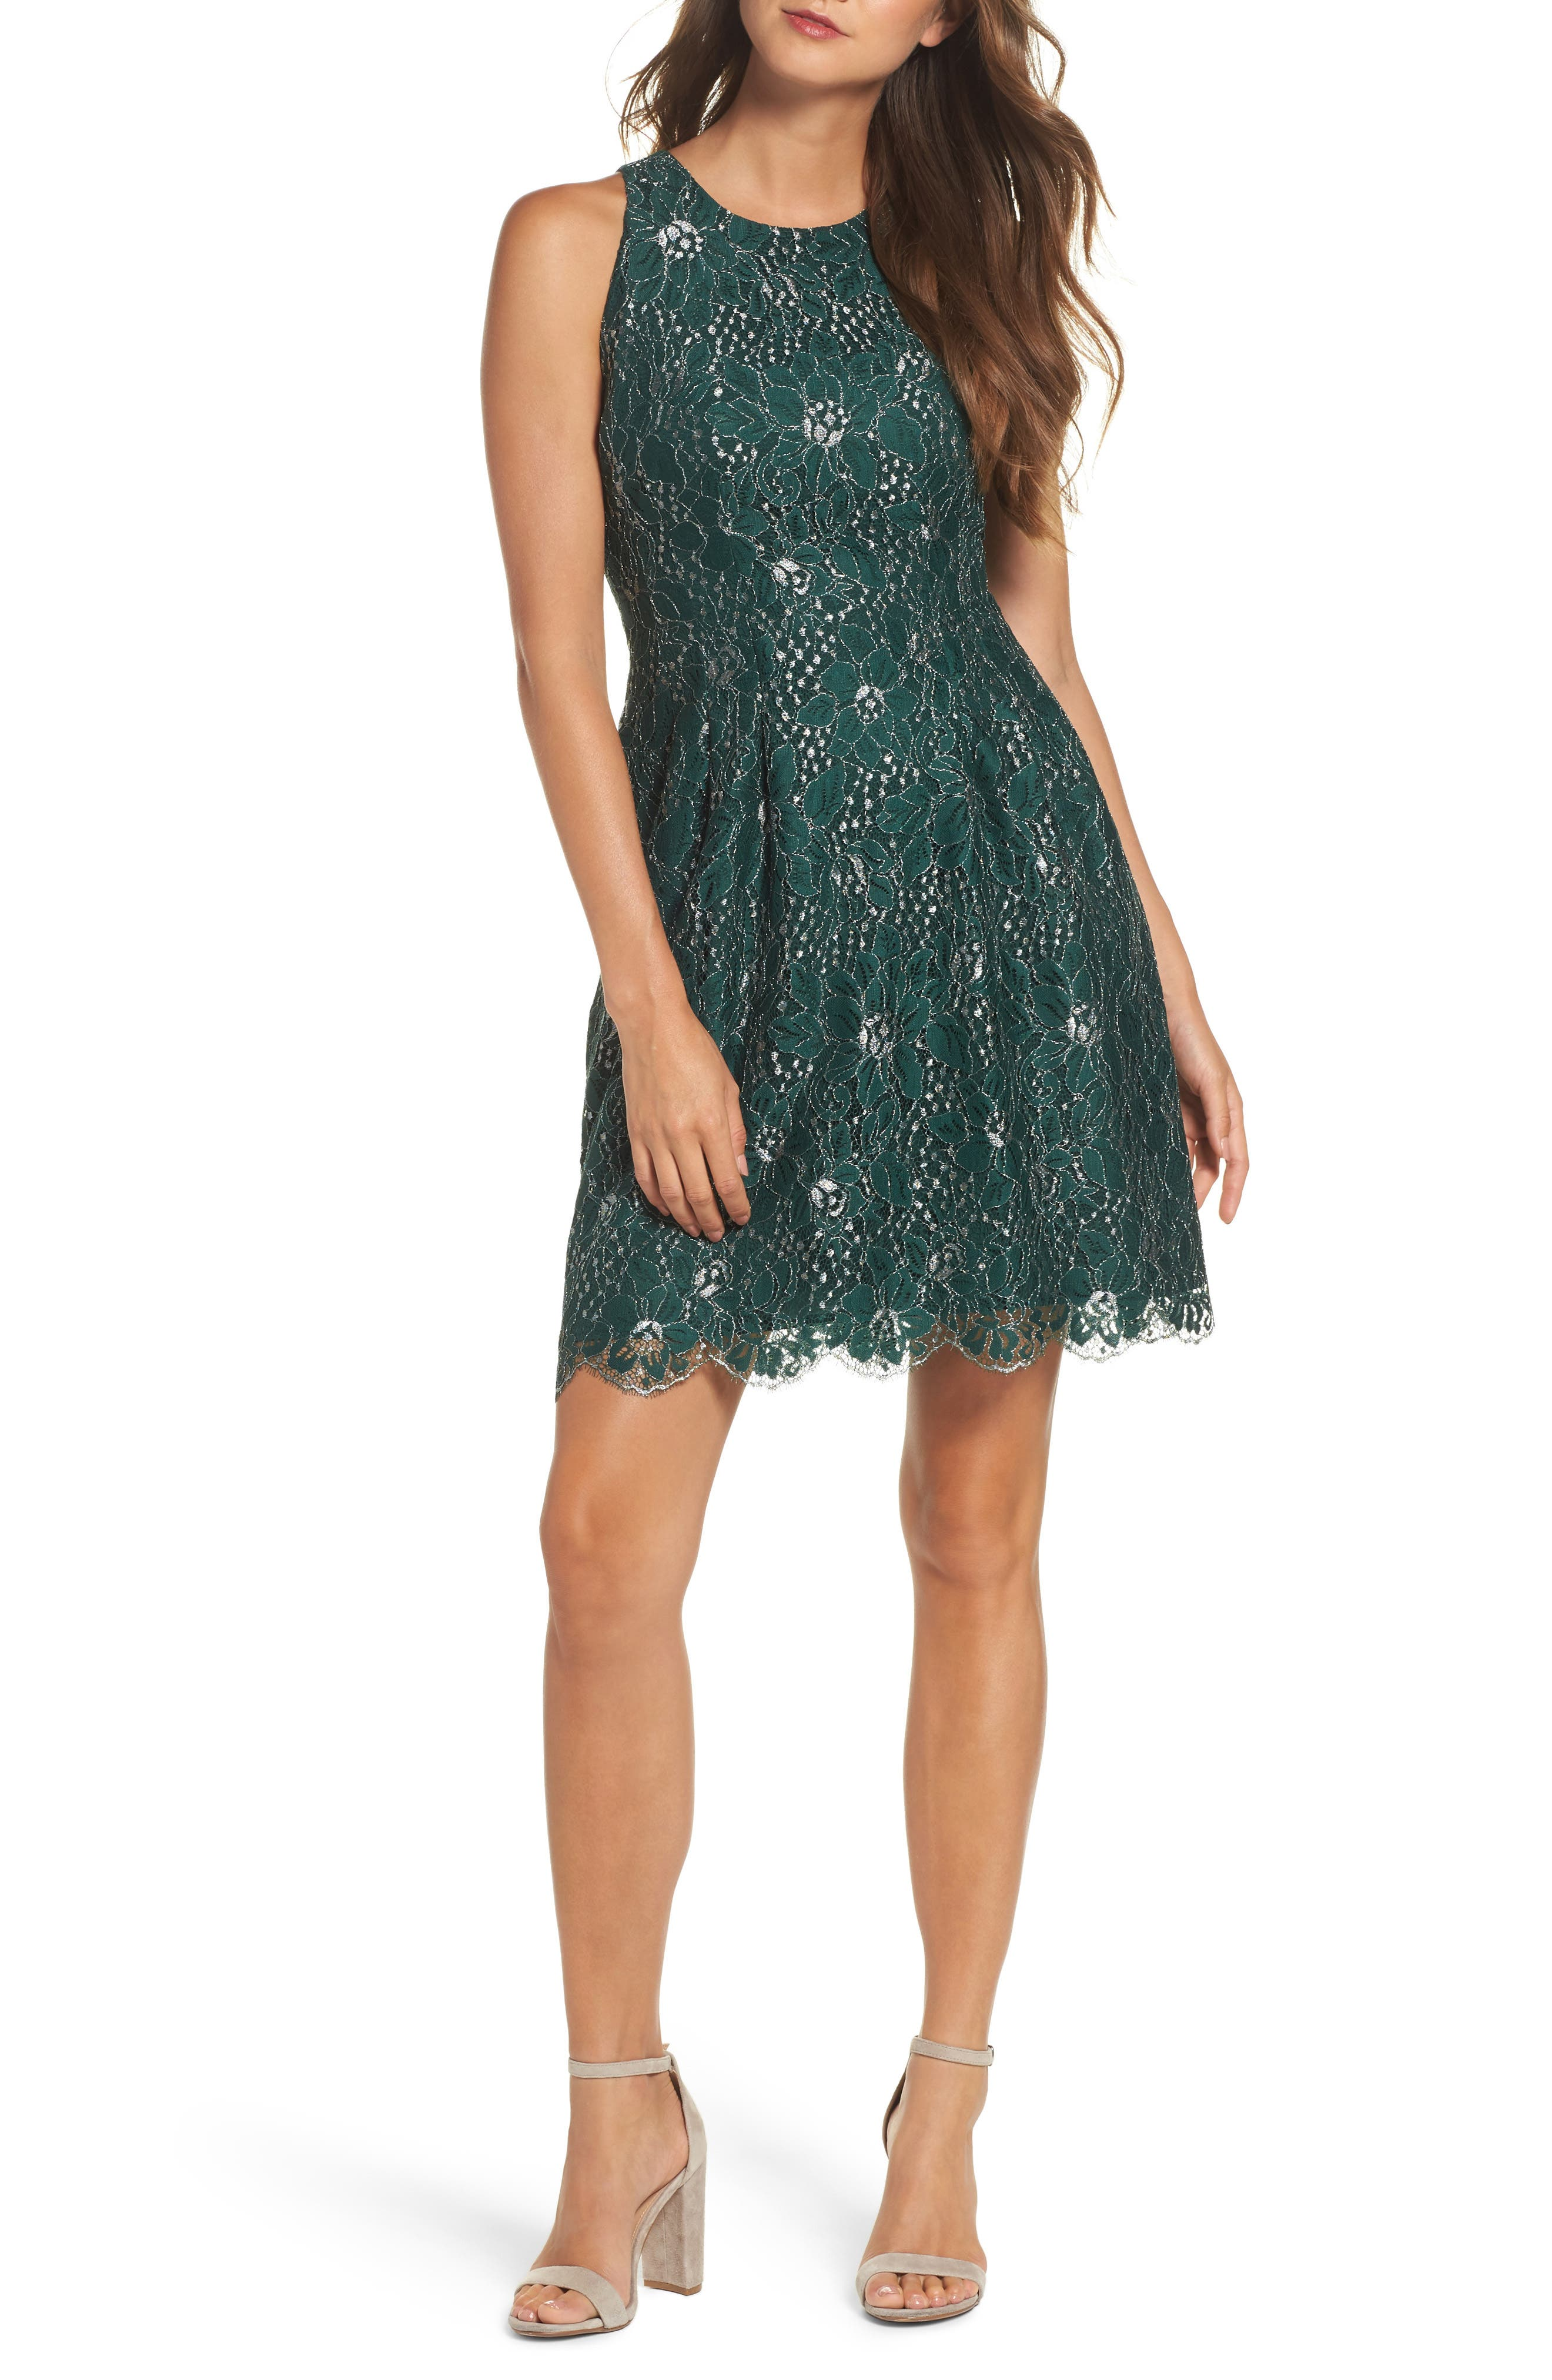 Main Image - Vince Camuto Metallic Lace Fit & Flare Dress